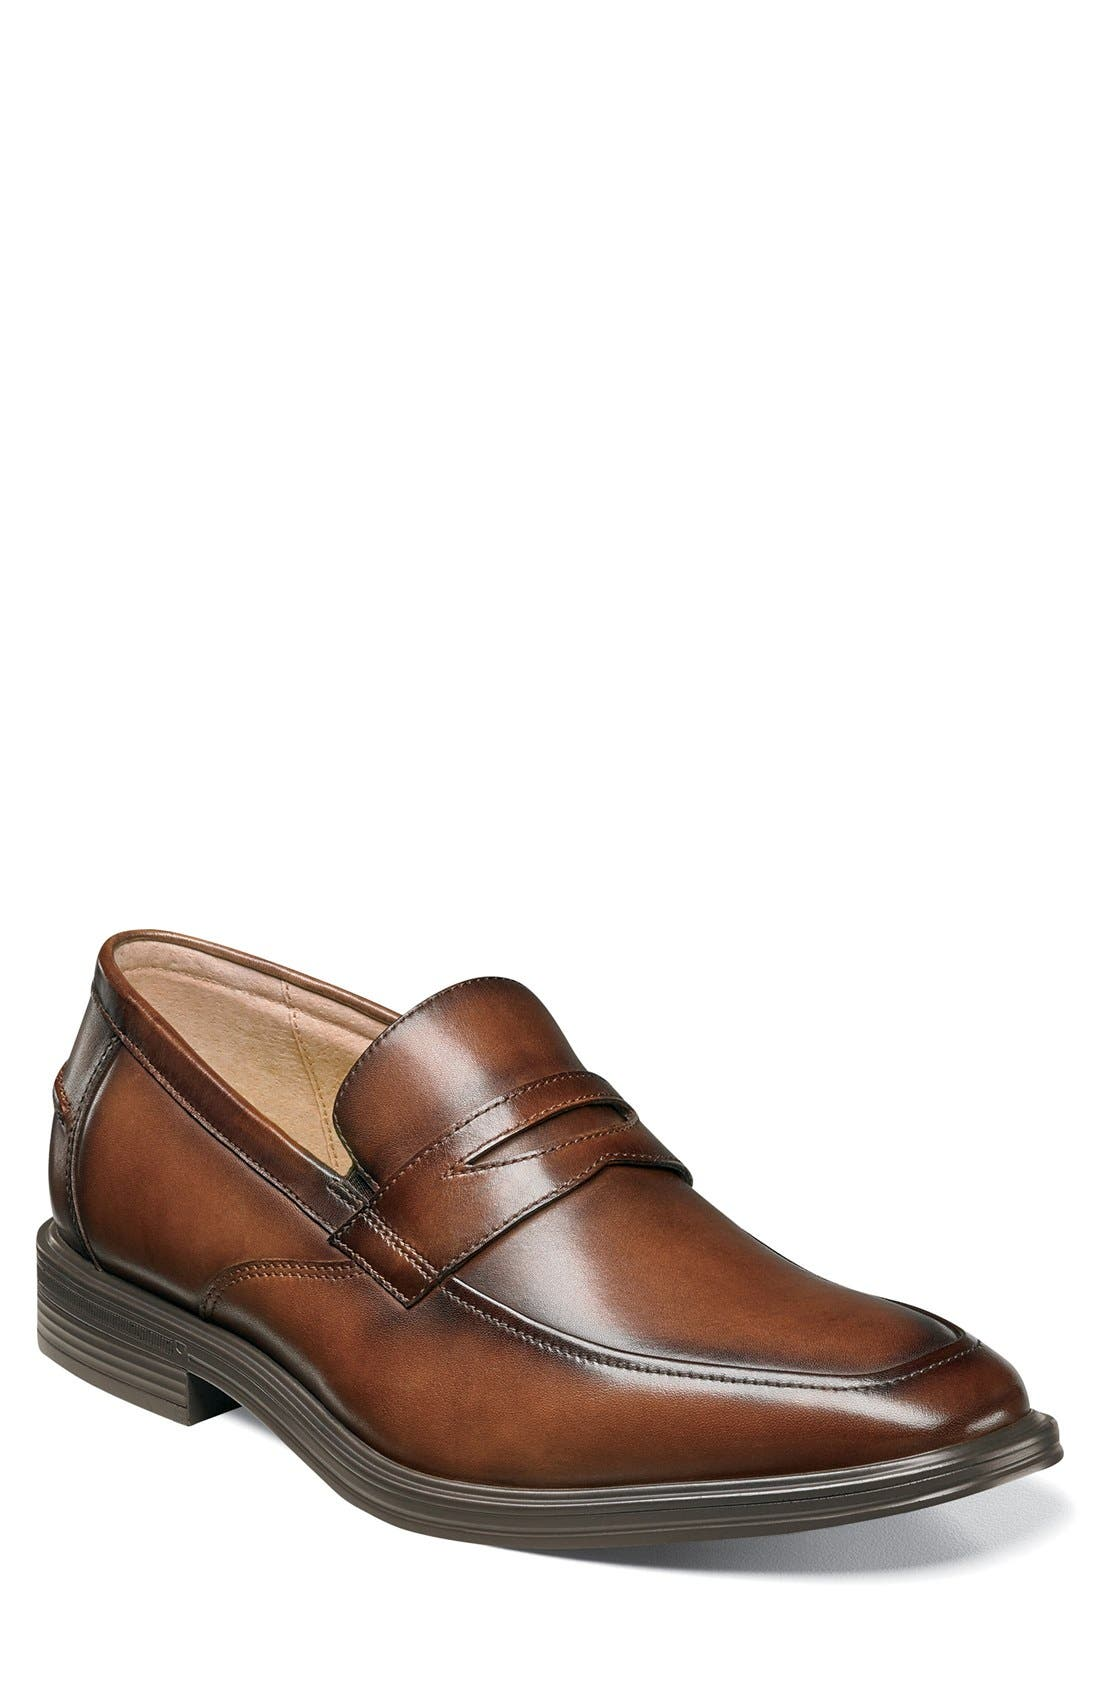 'Heights' Penny Loafer,                         Main,                         color, COGNAC LEATHER